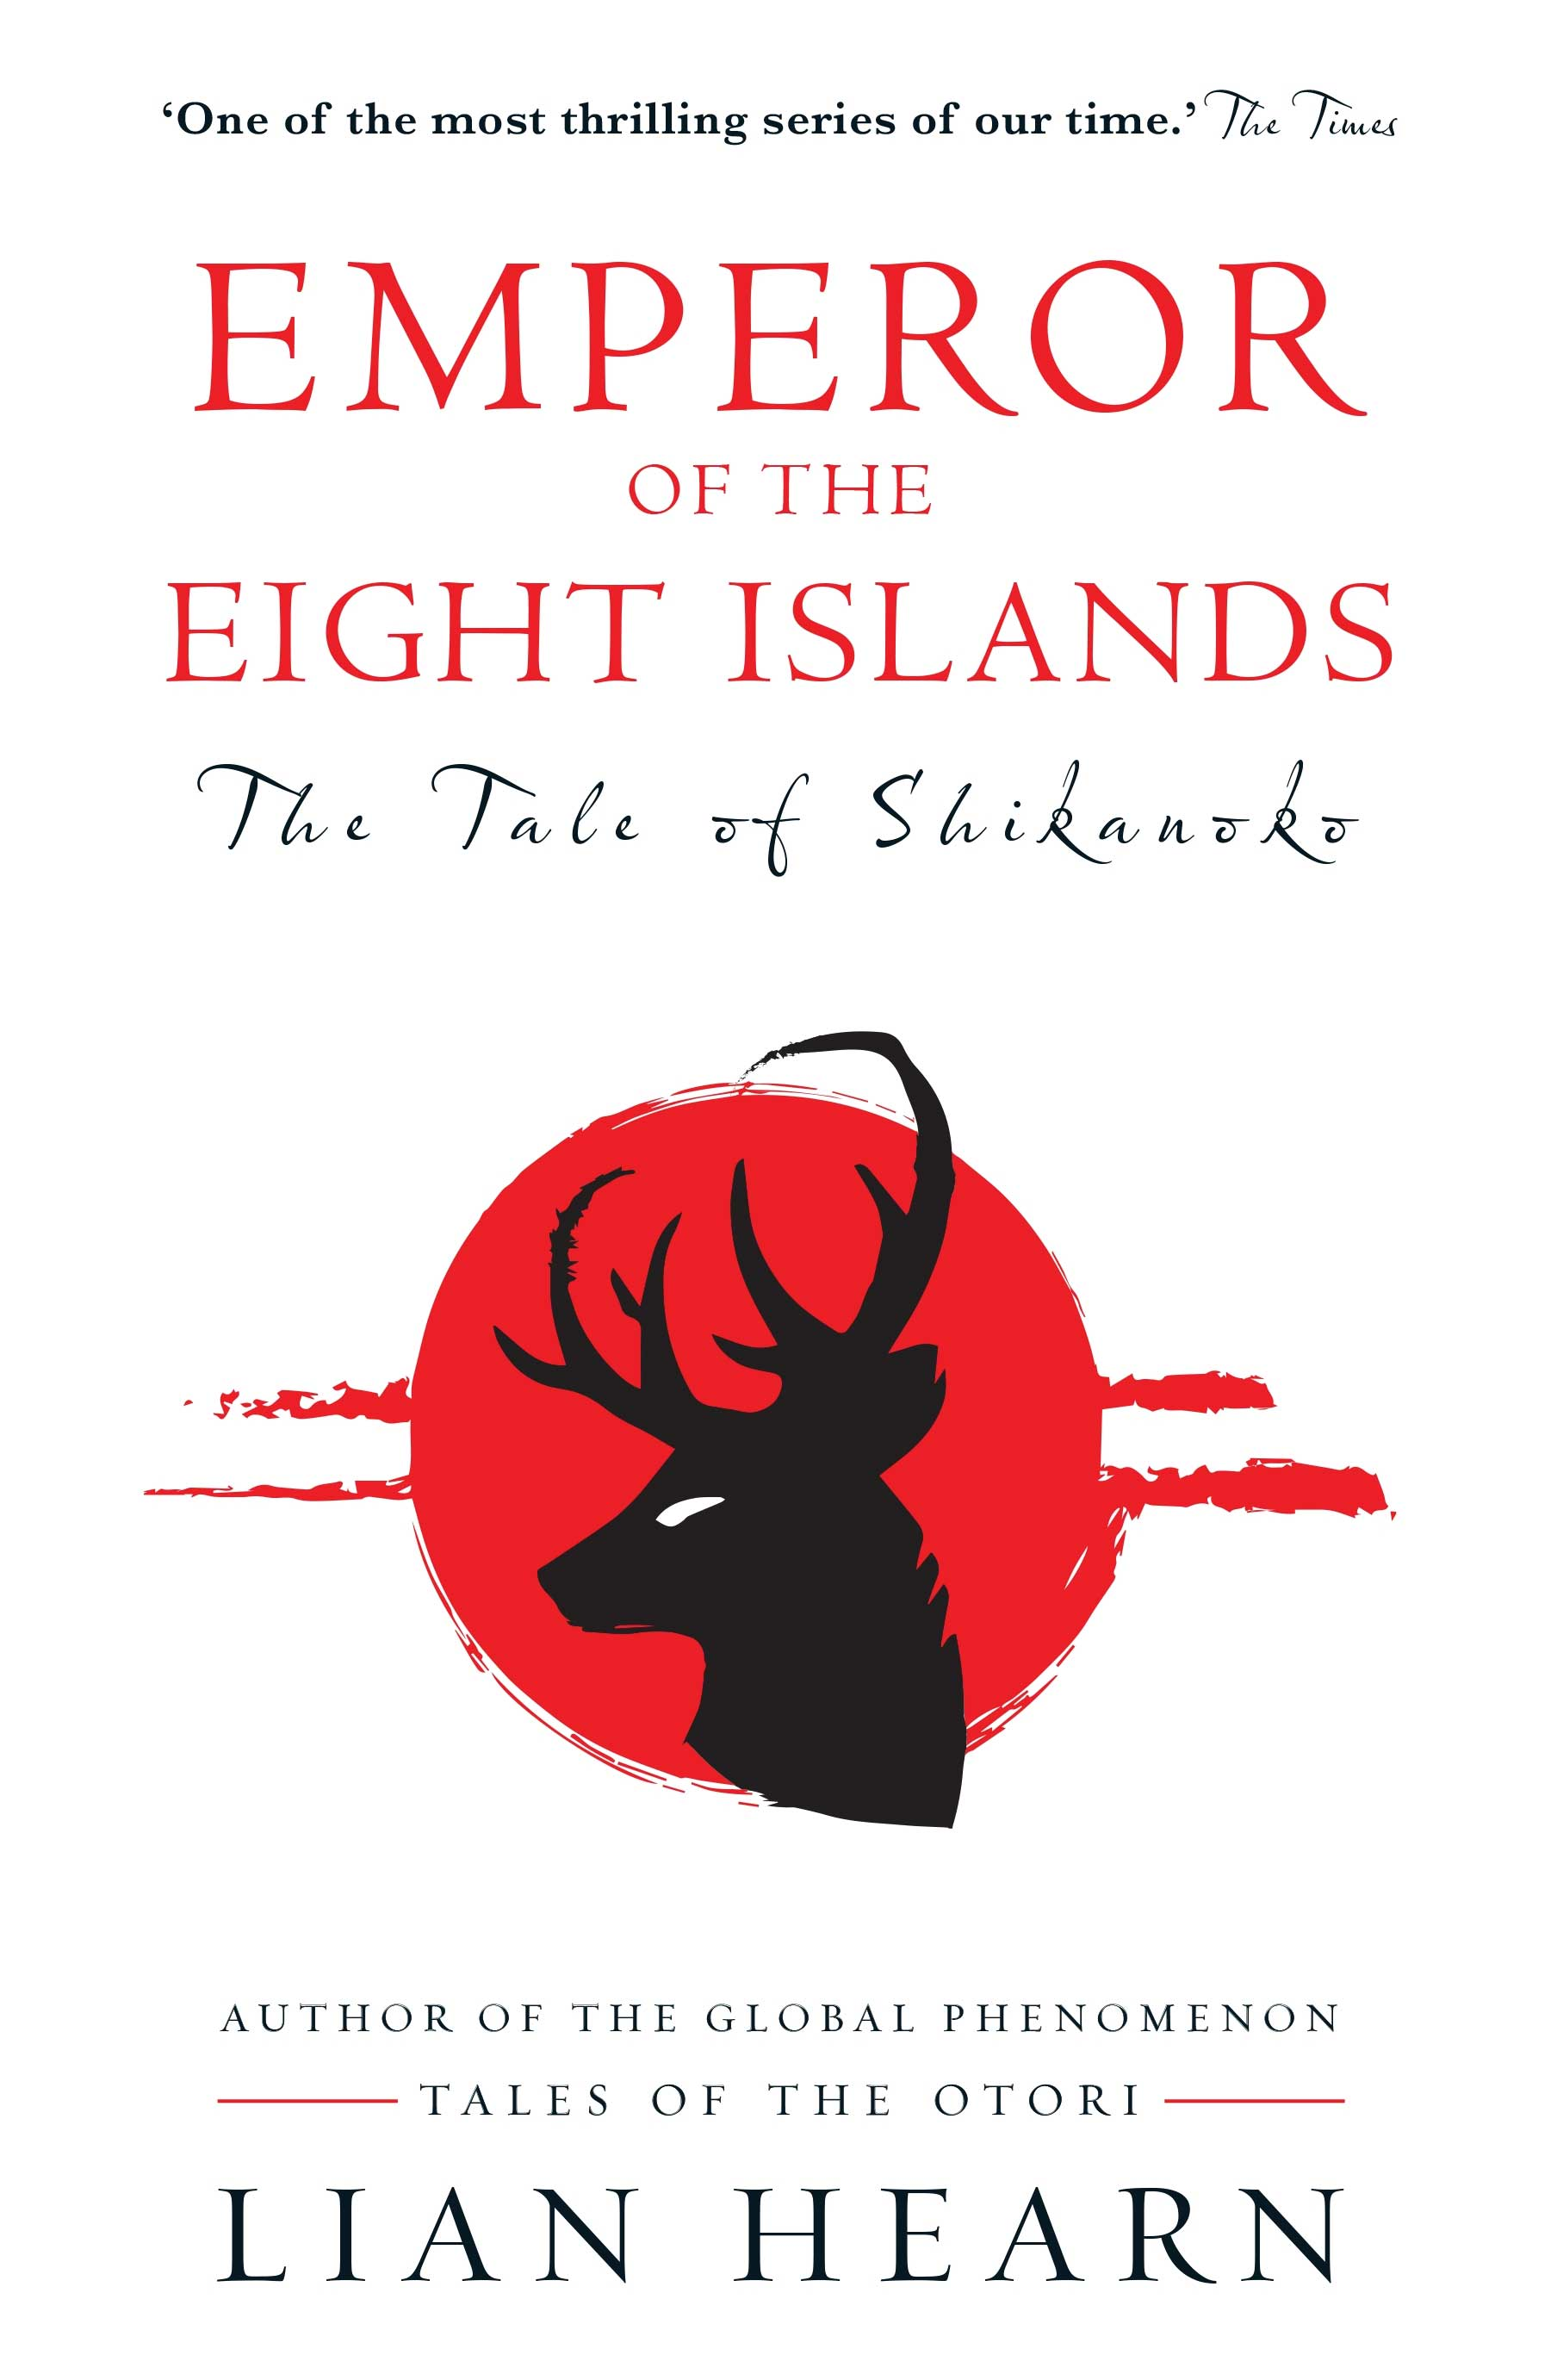 Cover of Emperor of the Eight Islands by Lian Hearn